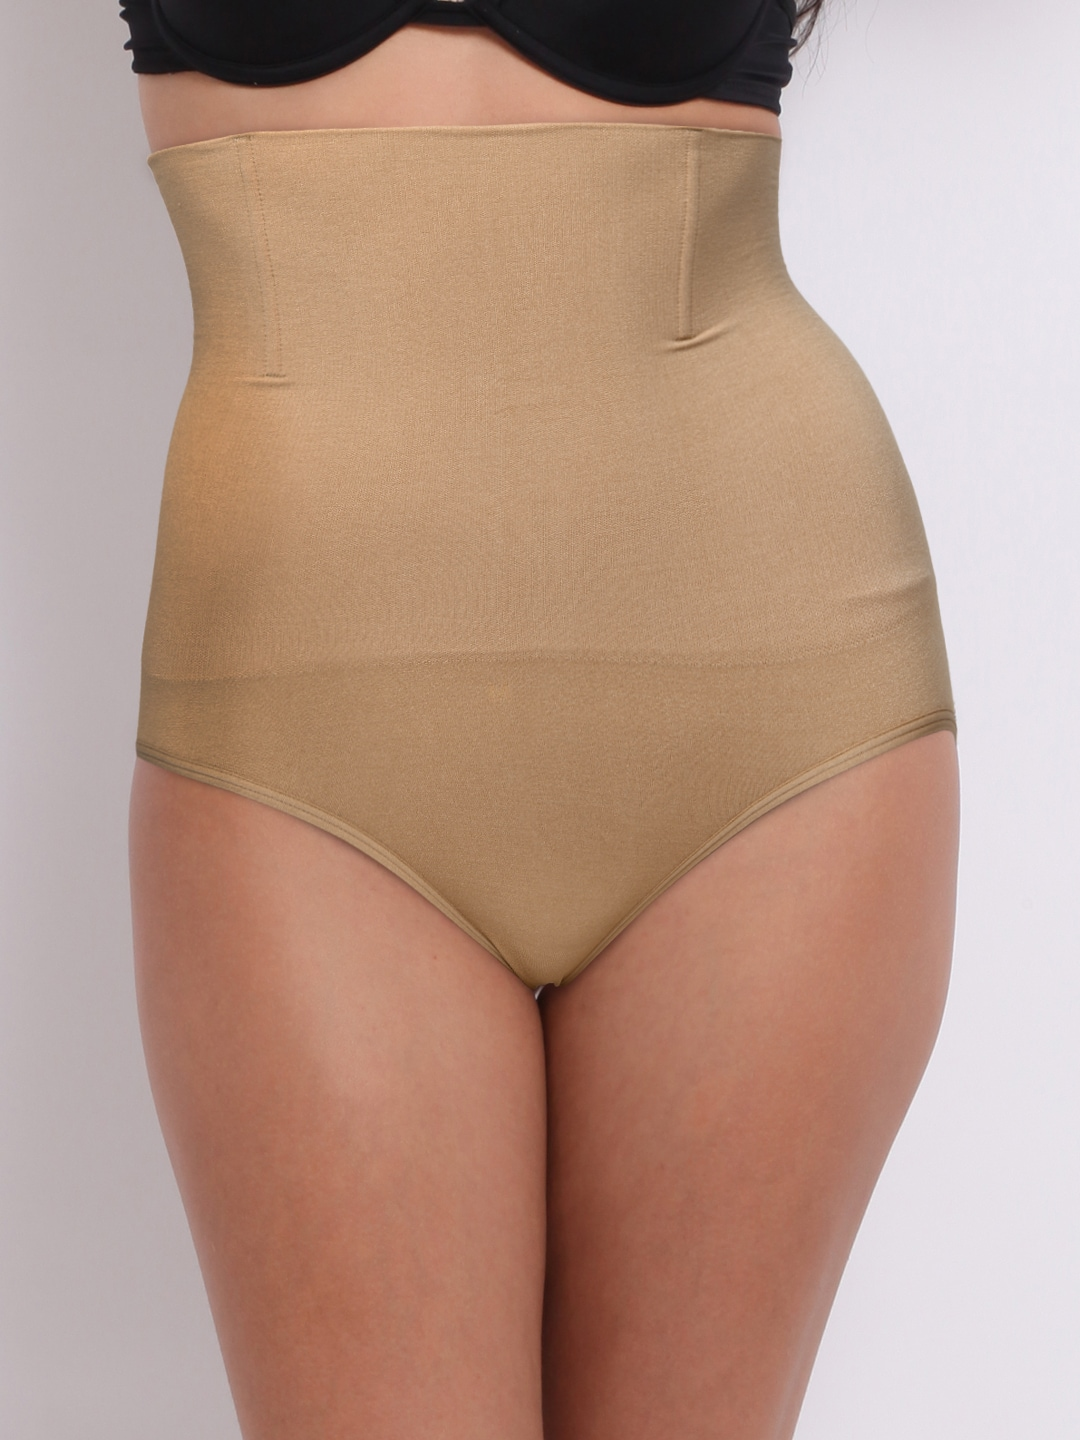 Enamor The Hourglass Collection Skin Coloured Seamless Hi-Waist Shapewear BR08